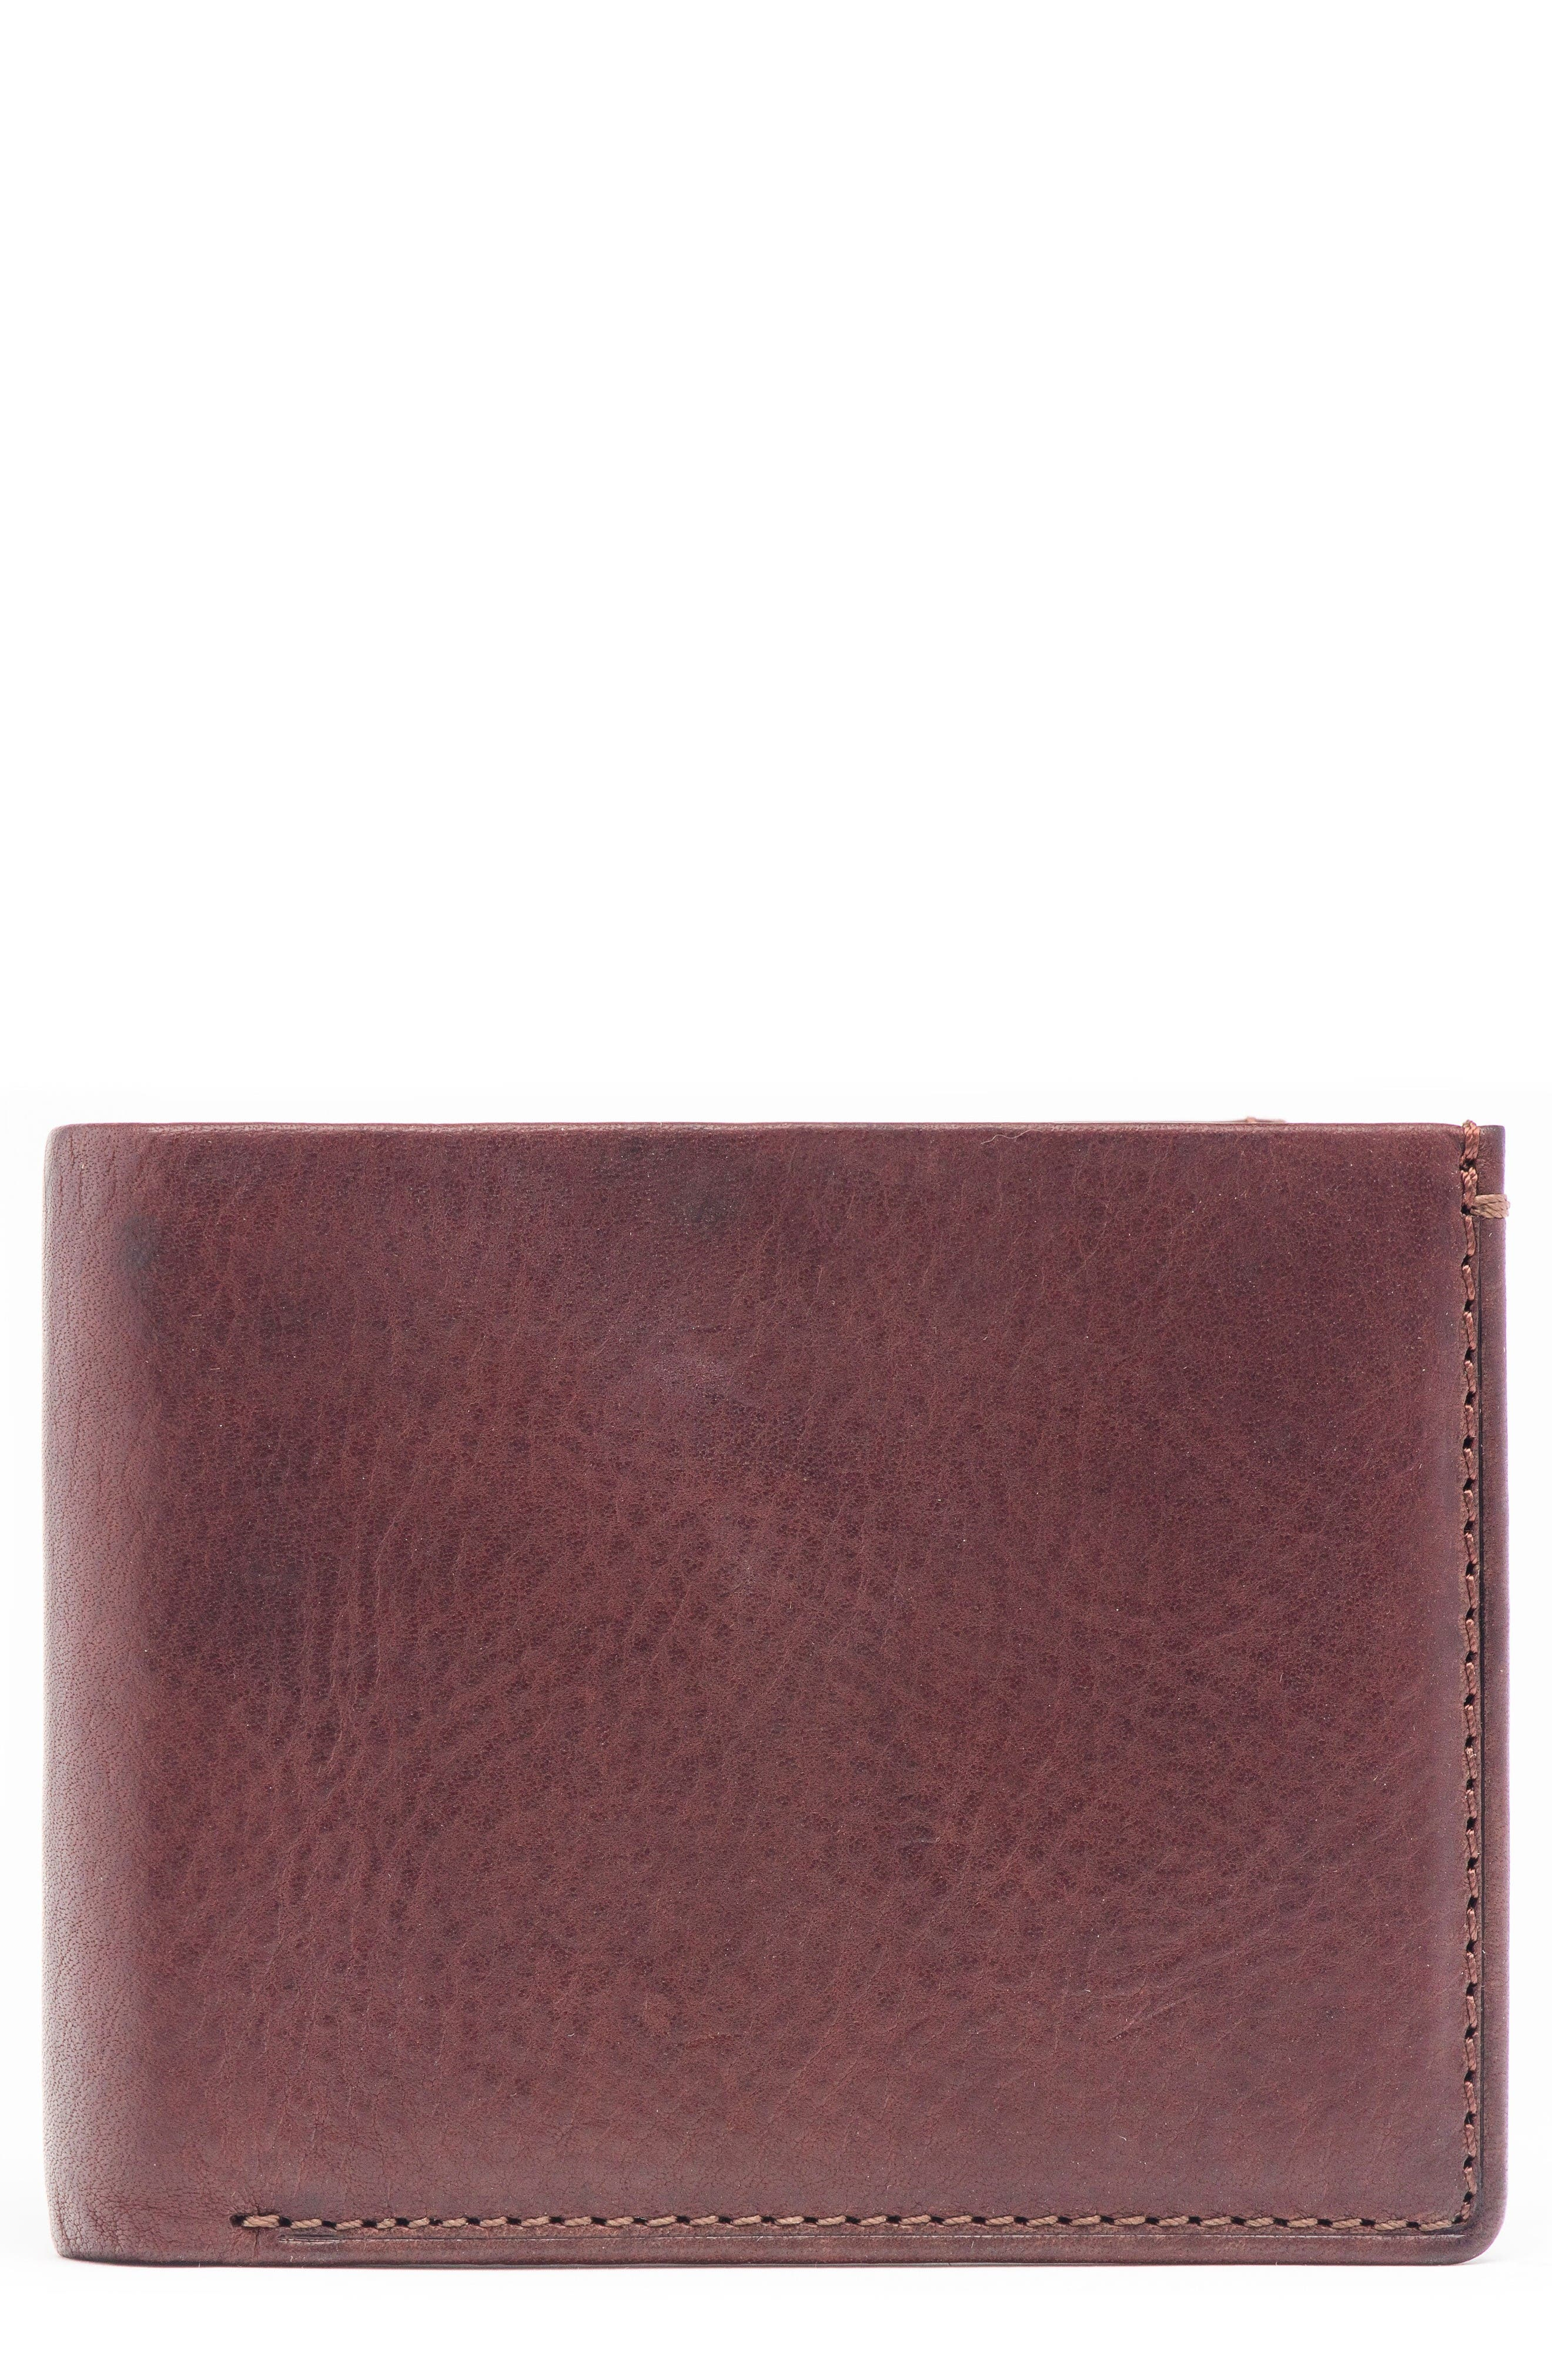 Leather & Denim Bifold Wallet,                         Main,                         color, Blue Denim And Brown Leather